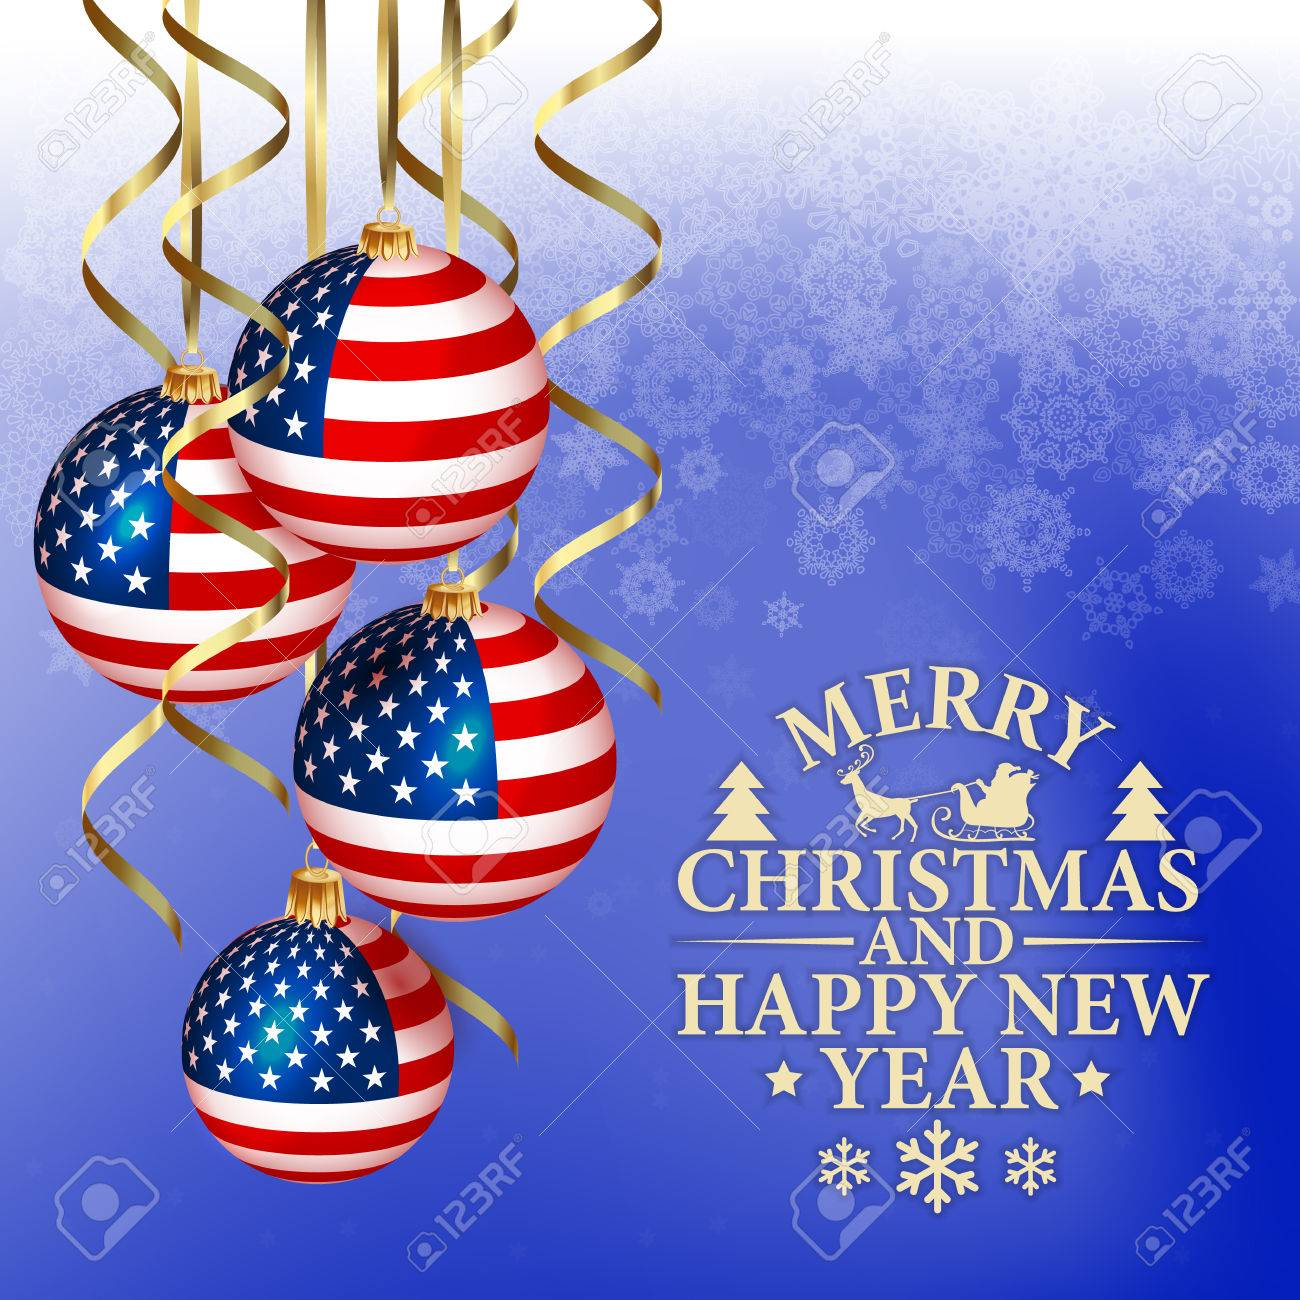 Patriotic Christmas.Vector Abstract Christmas Background With Patriotic Elements